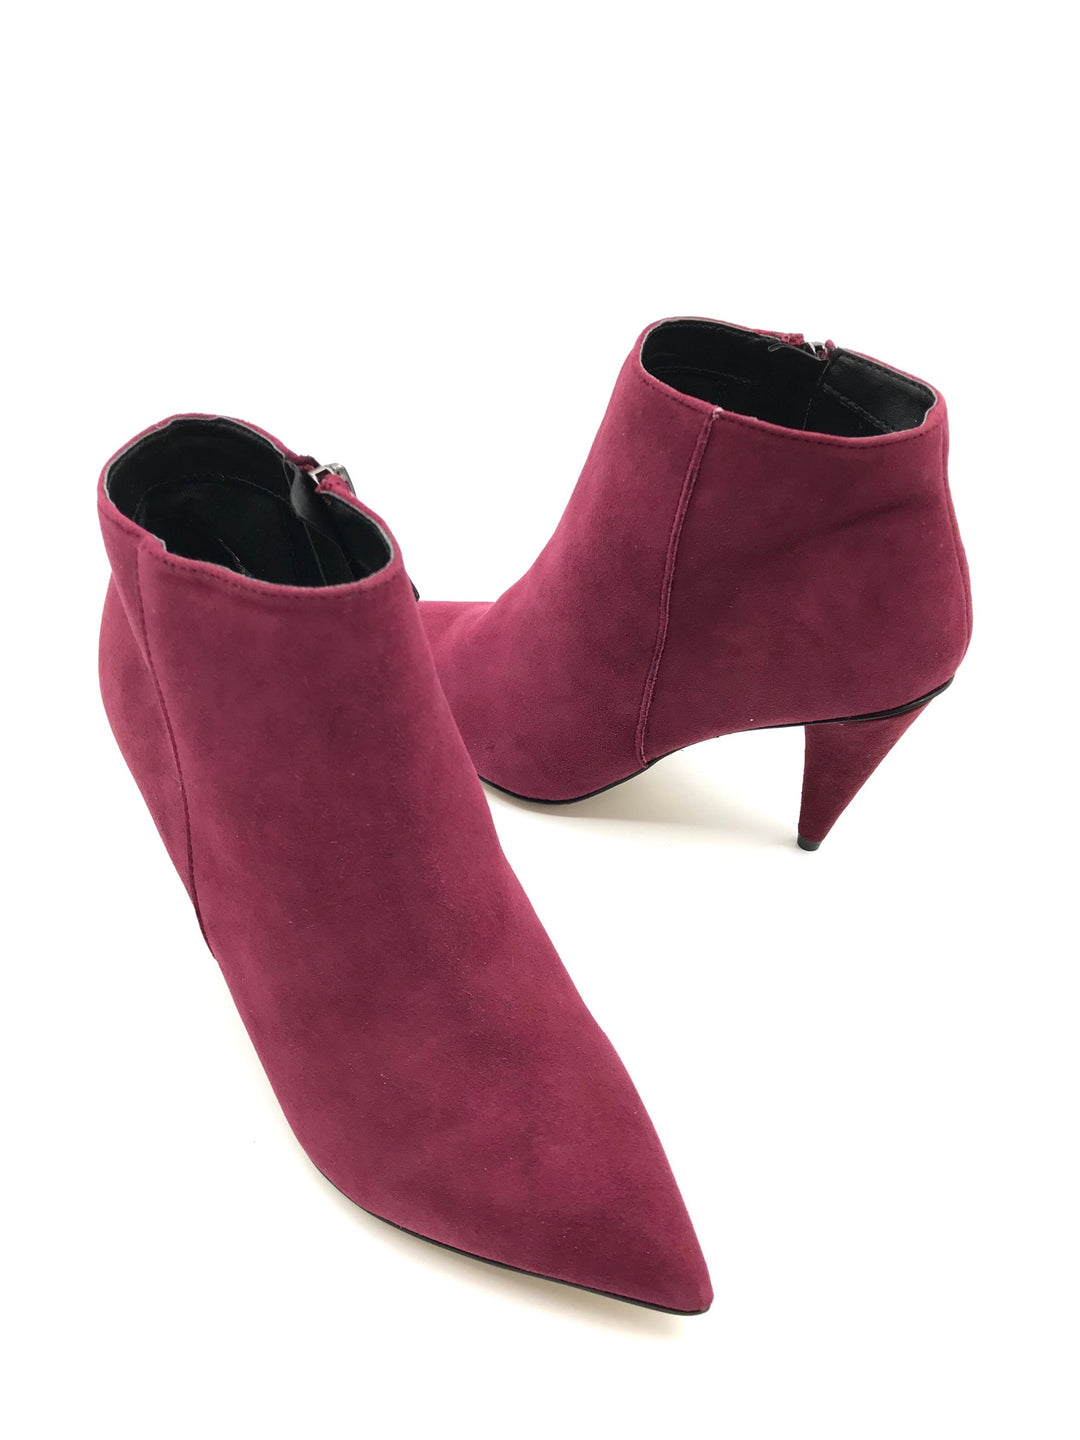 Primary Photo - BRAND: DOLCE VITA <BR>STYLE: BOOTS ANKLE <BR>COLOR: RASPBERRY <BR>SIZE: 7.5 <BR>SKU: 262-26211-140557<BR>NEW CONDITION - NEVER WORN